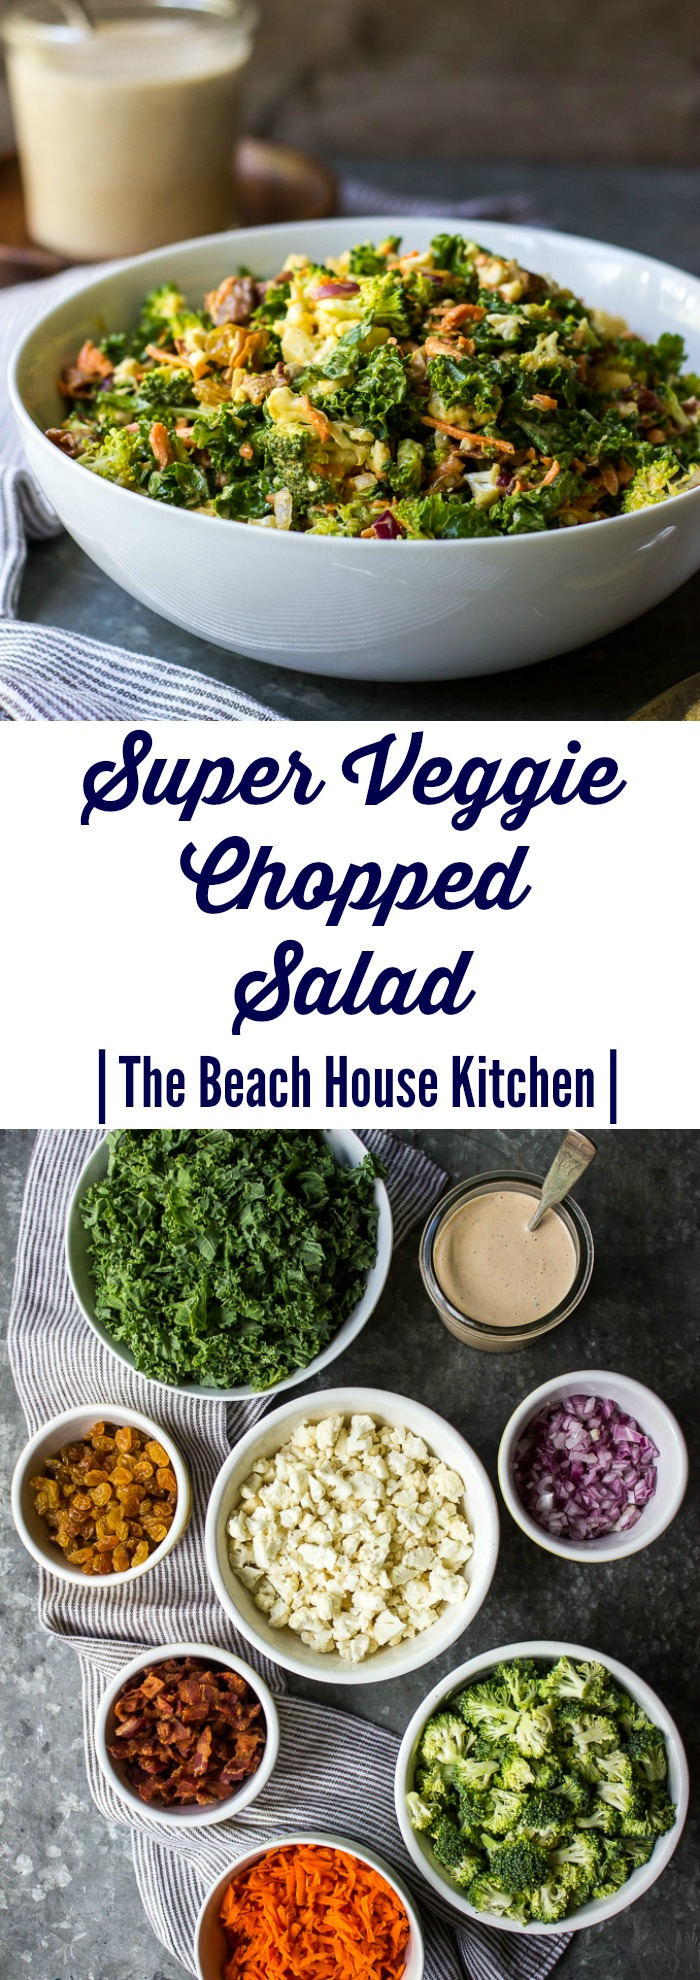 Super Veggie Chopped Salad with BBQ Ranch Dressing